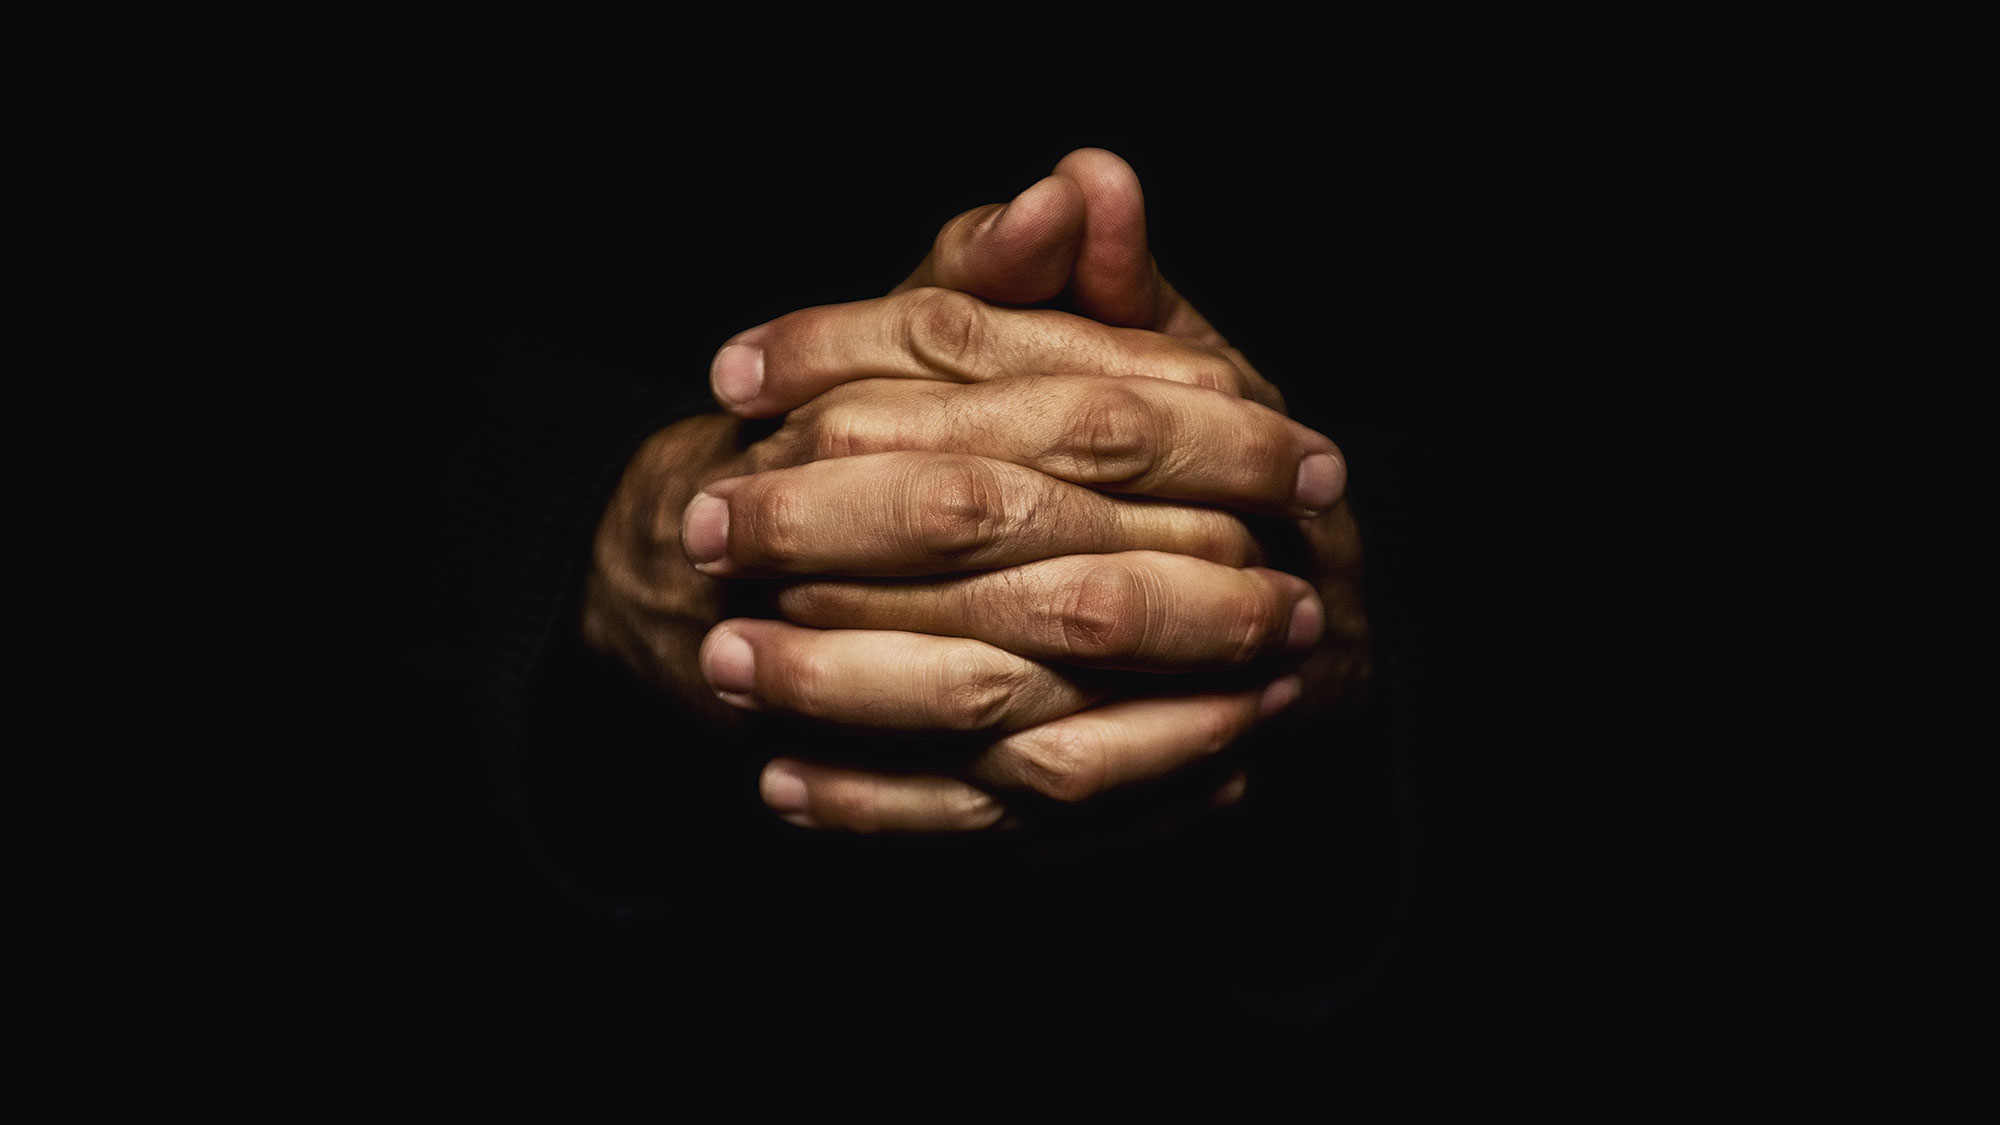 Hands crossed for prayer in the dark.